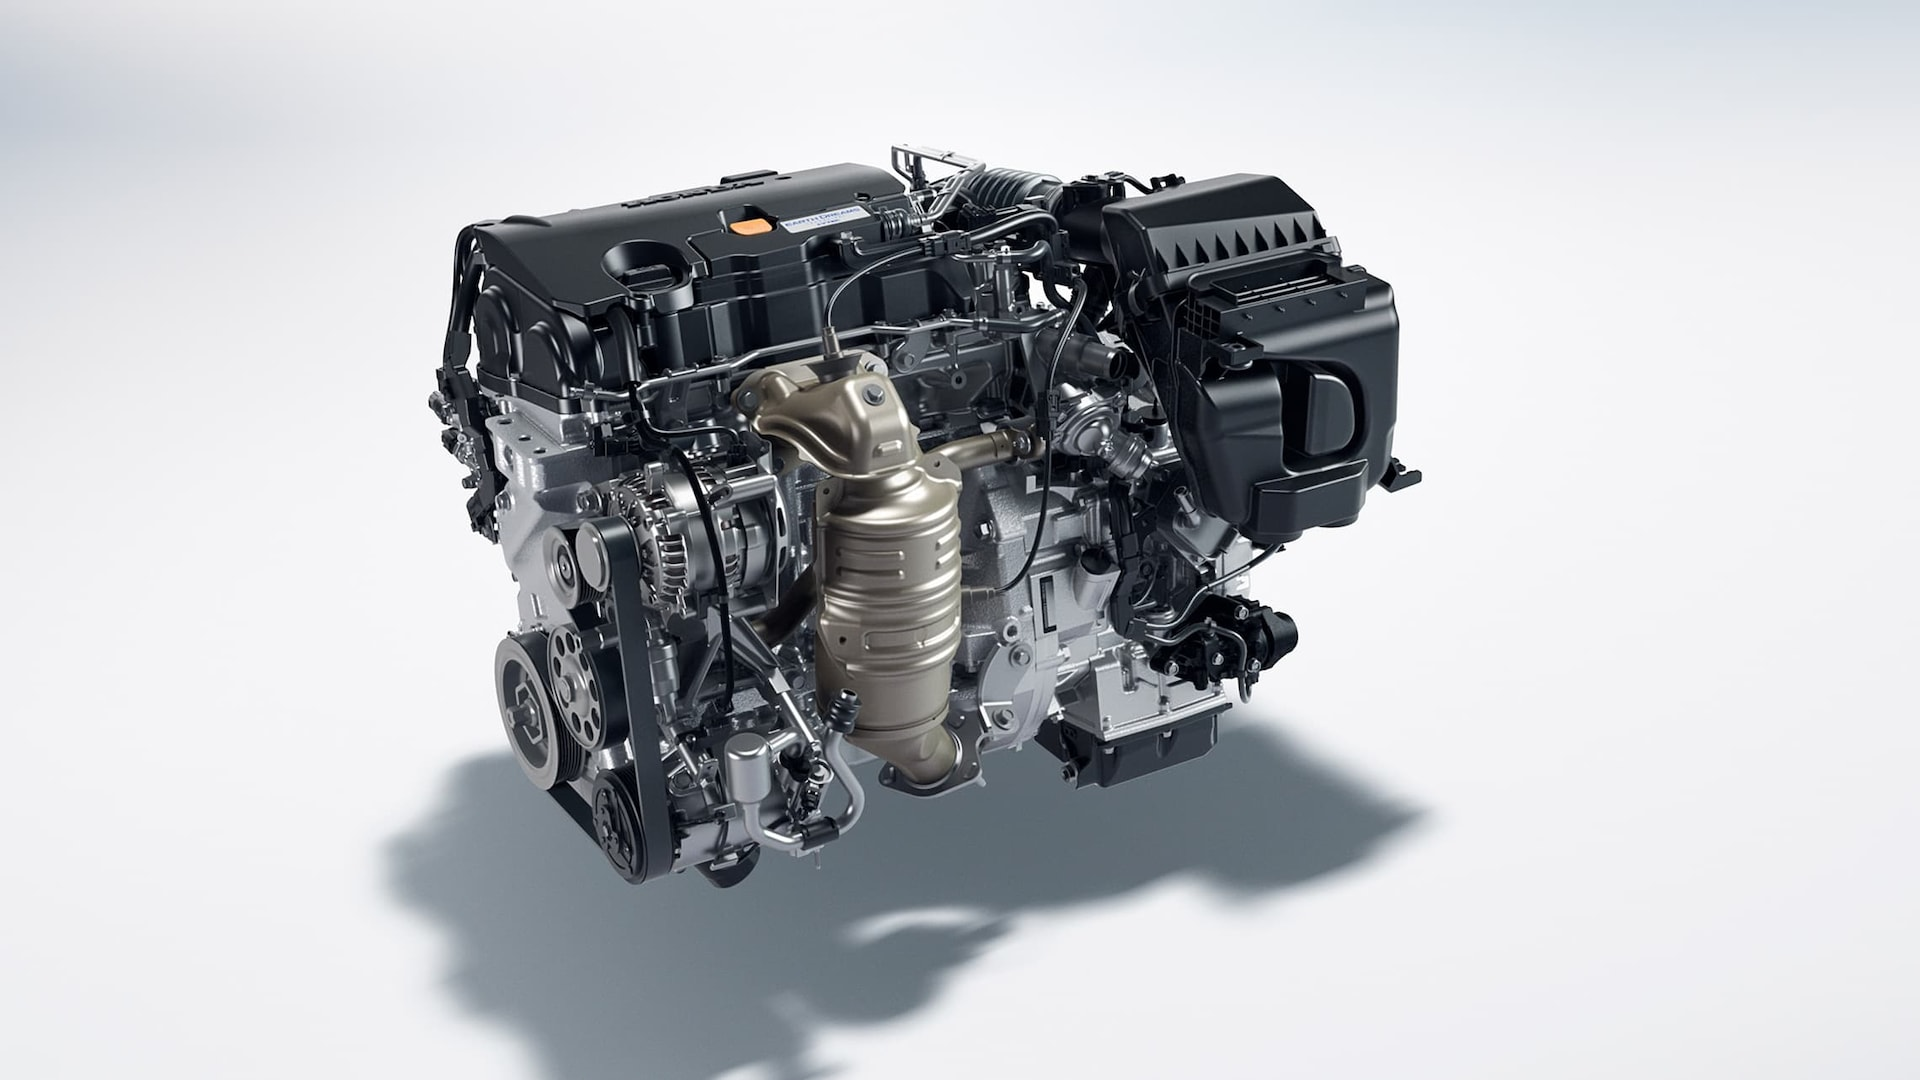 2.0-liter, 4-cylinder engine detail in 2019 Honda Civic LX Sedan.